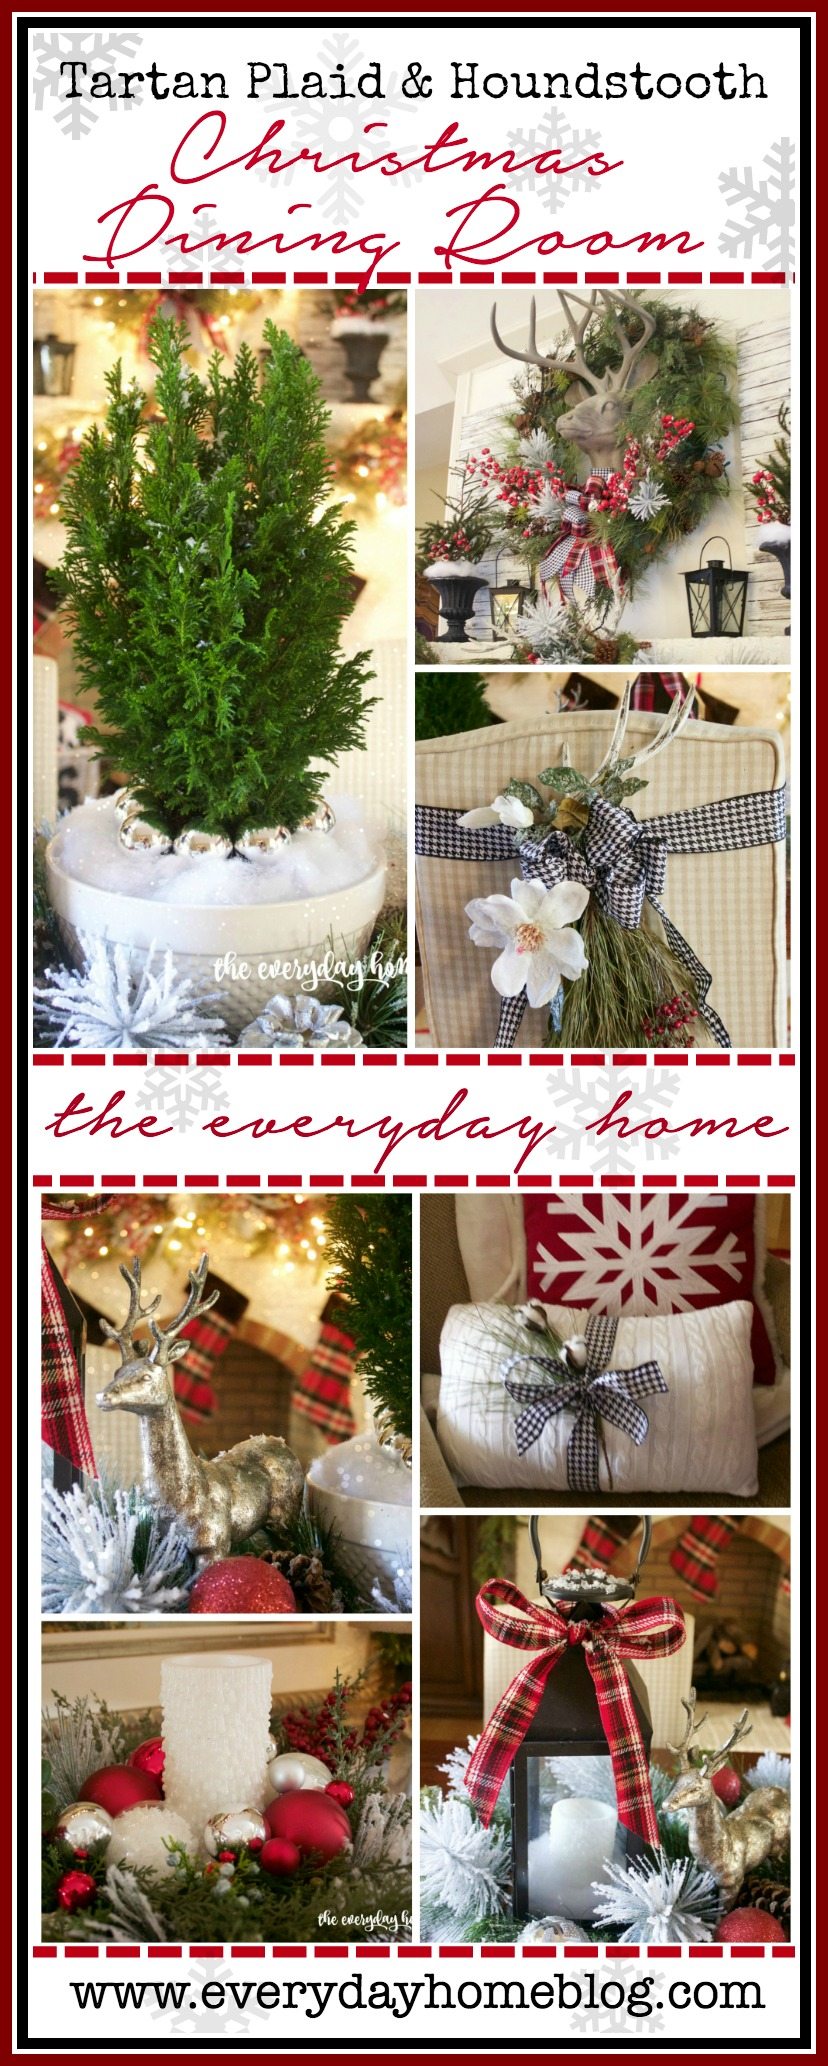 Tartan Plaid & Houndstooth Christmas Dining Room | 2015 Christmas Tour | The Everyday Home | www.everydayhomeblog.com